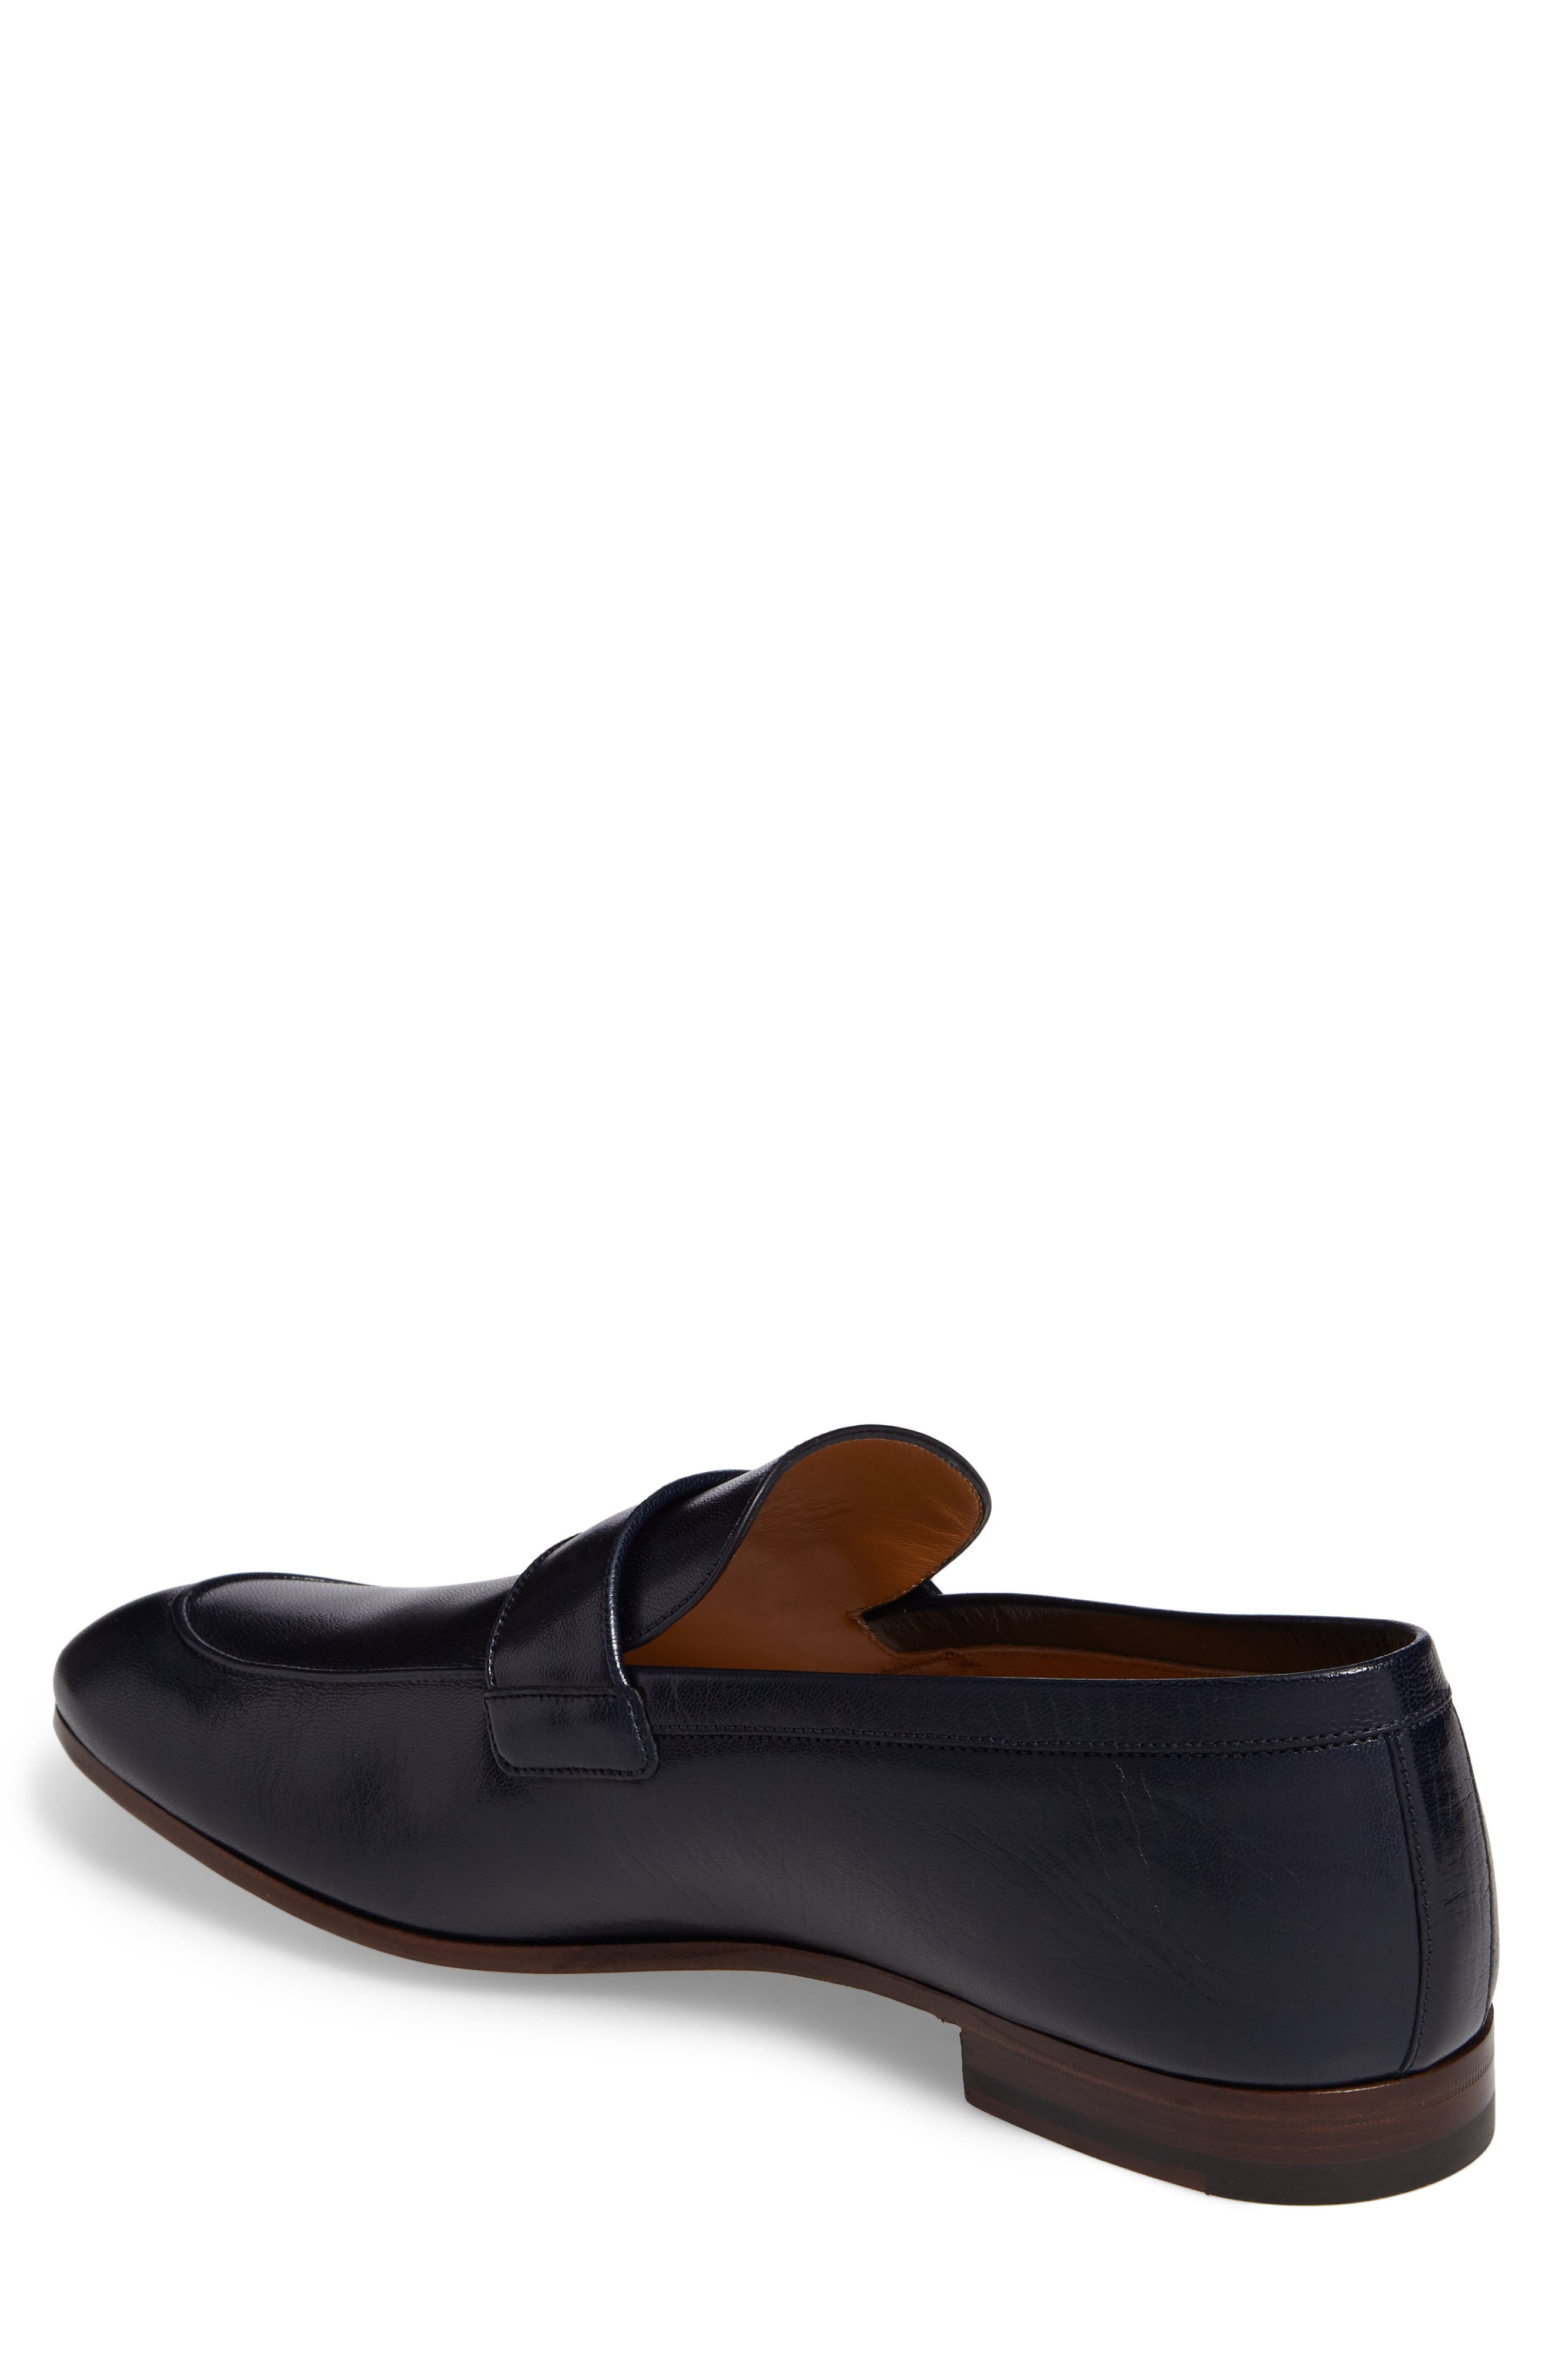 Donnie Bit Loafer,                             Alternate thumbnail 10, color,